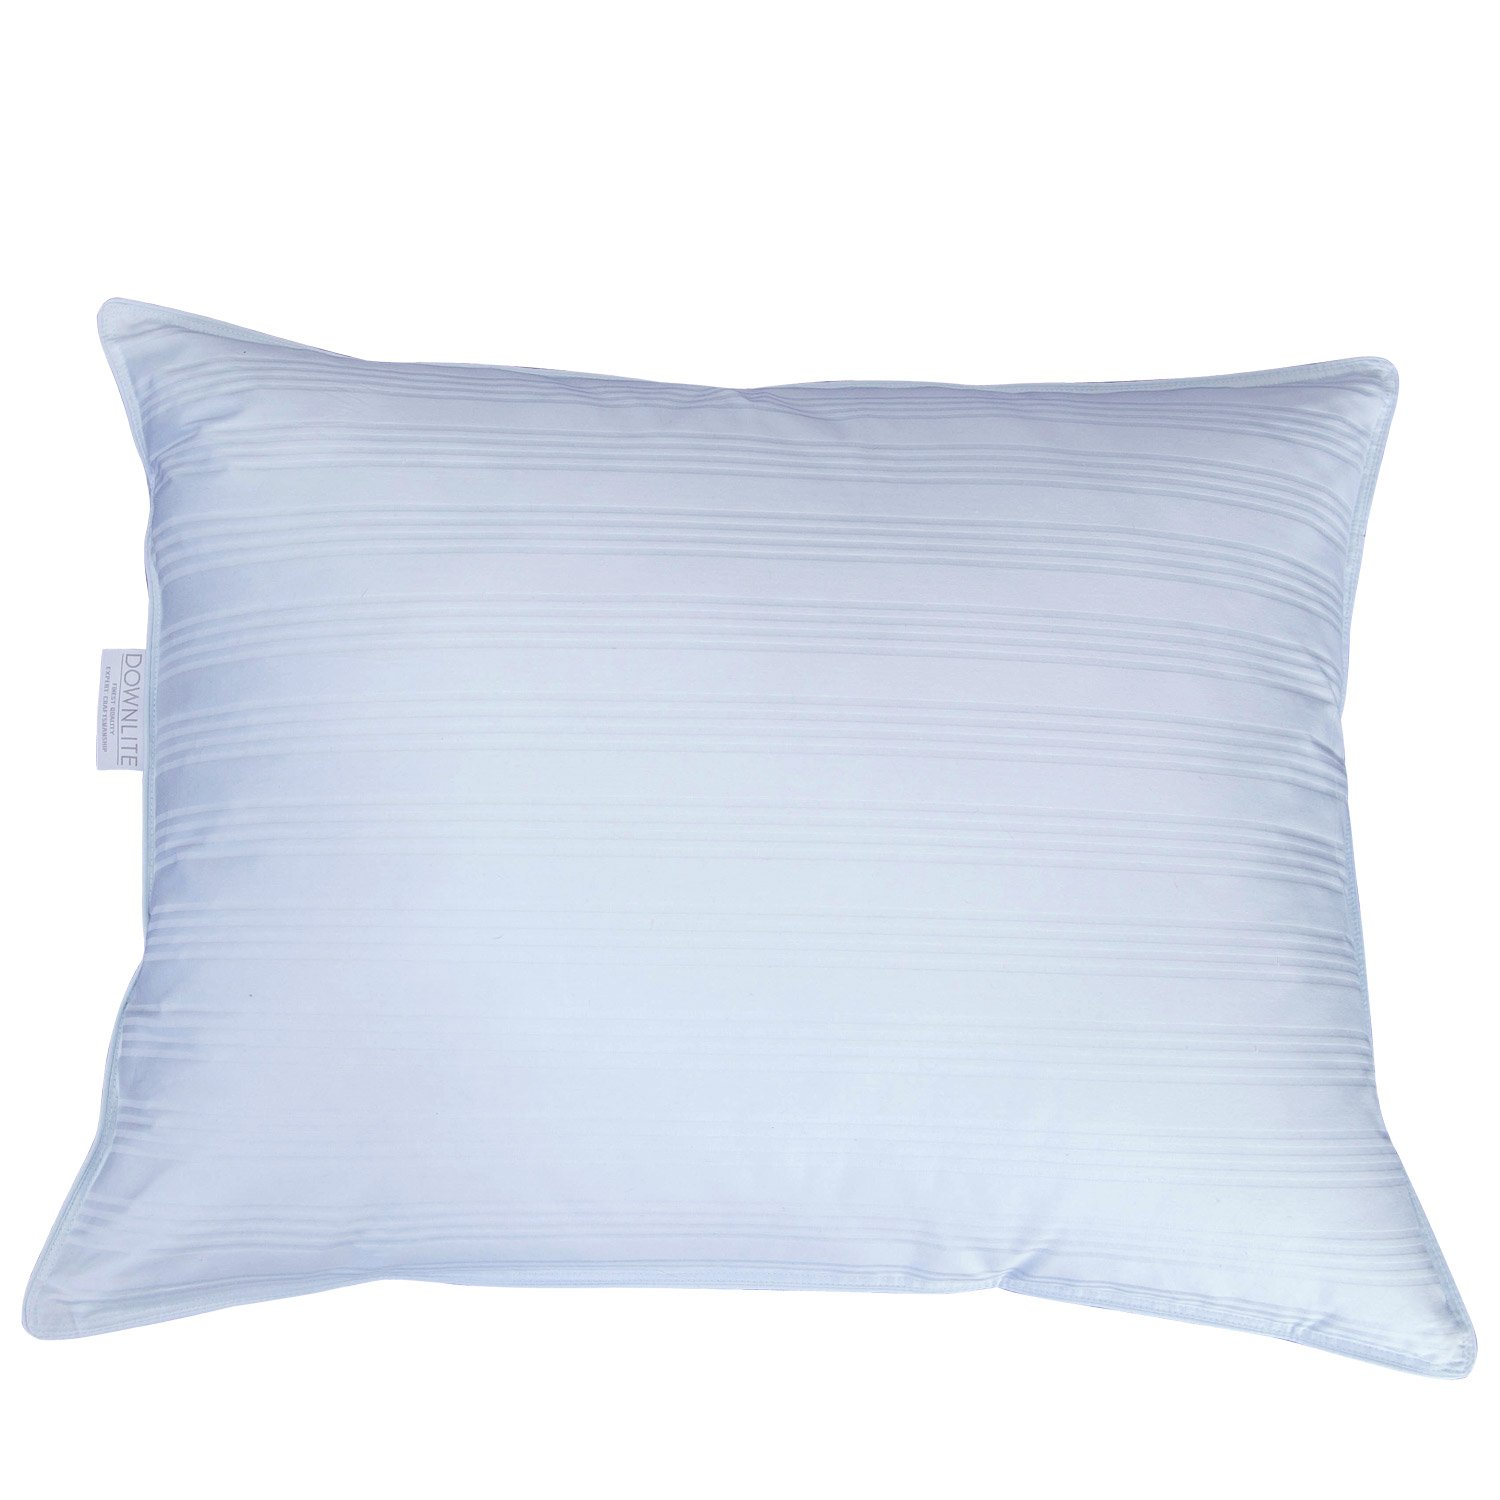 DOWNLITE Extra Soft Down Pillow - Great for Stomach Sleepers - Very Flat (Queen - Duck Down)